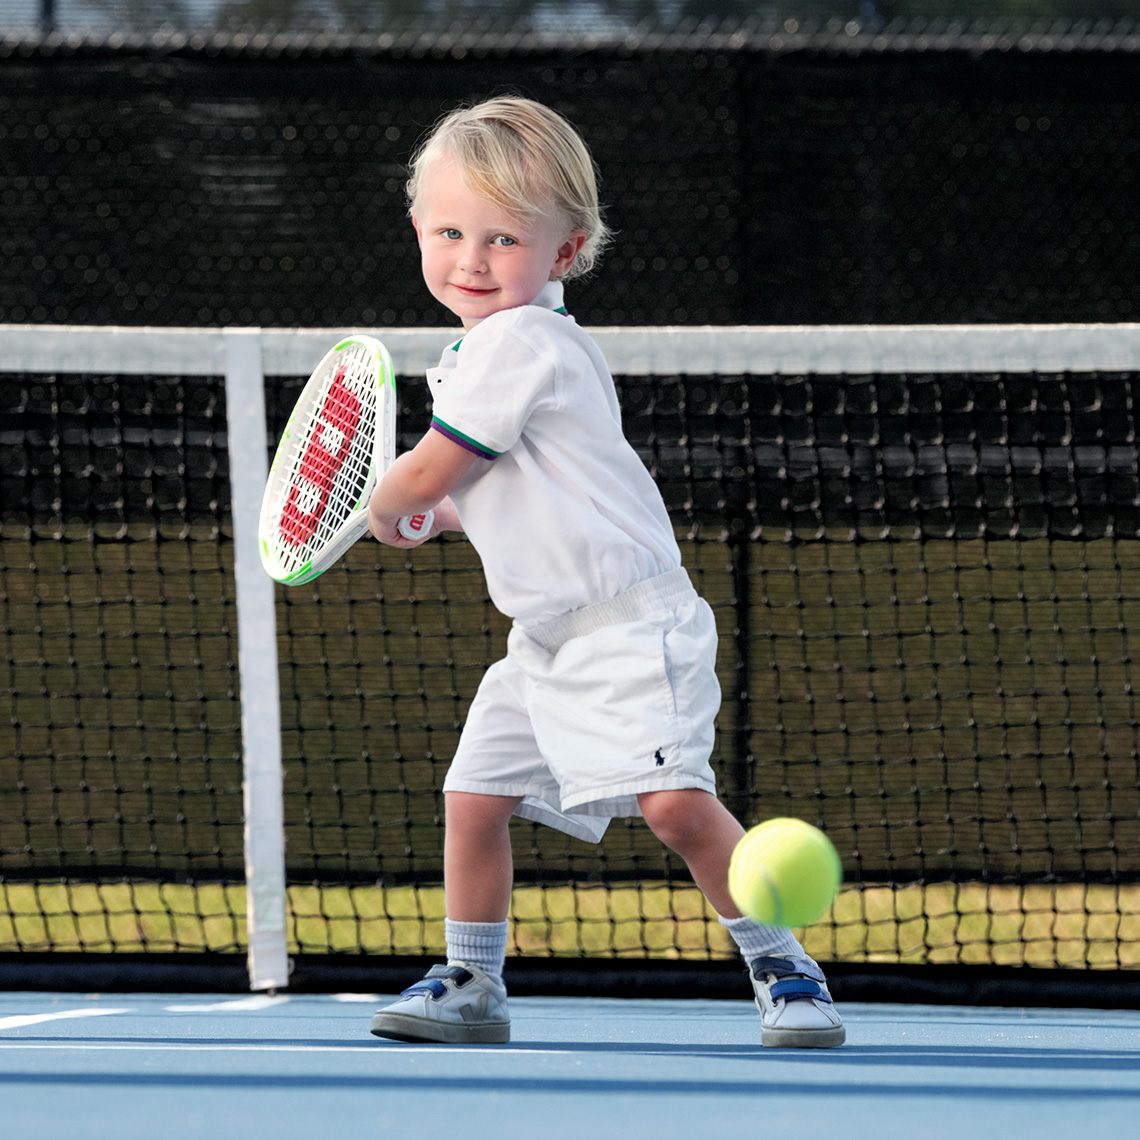 Color portrait of a blonde  little boy in white swinging a tennis racket to hit a ball